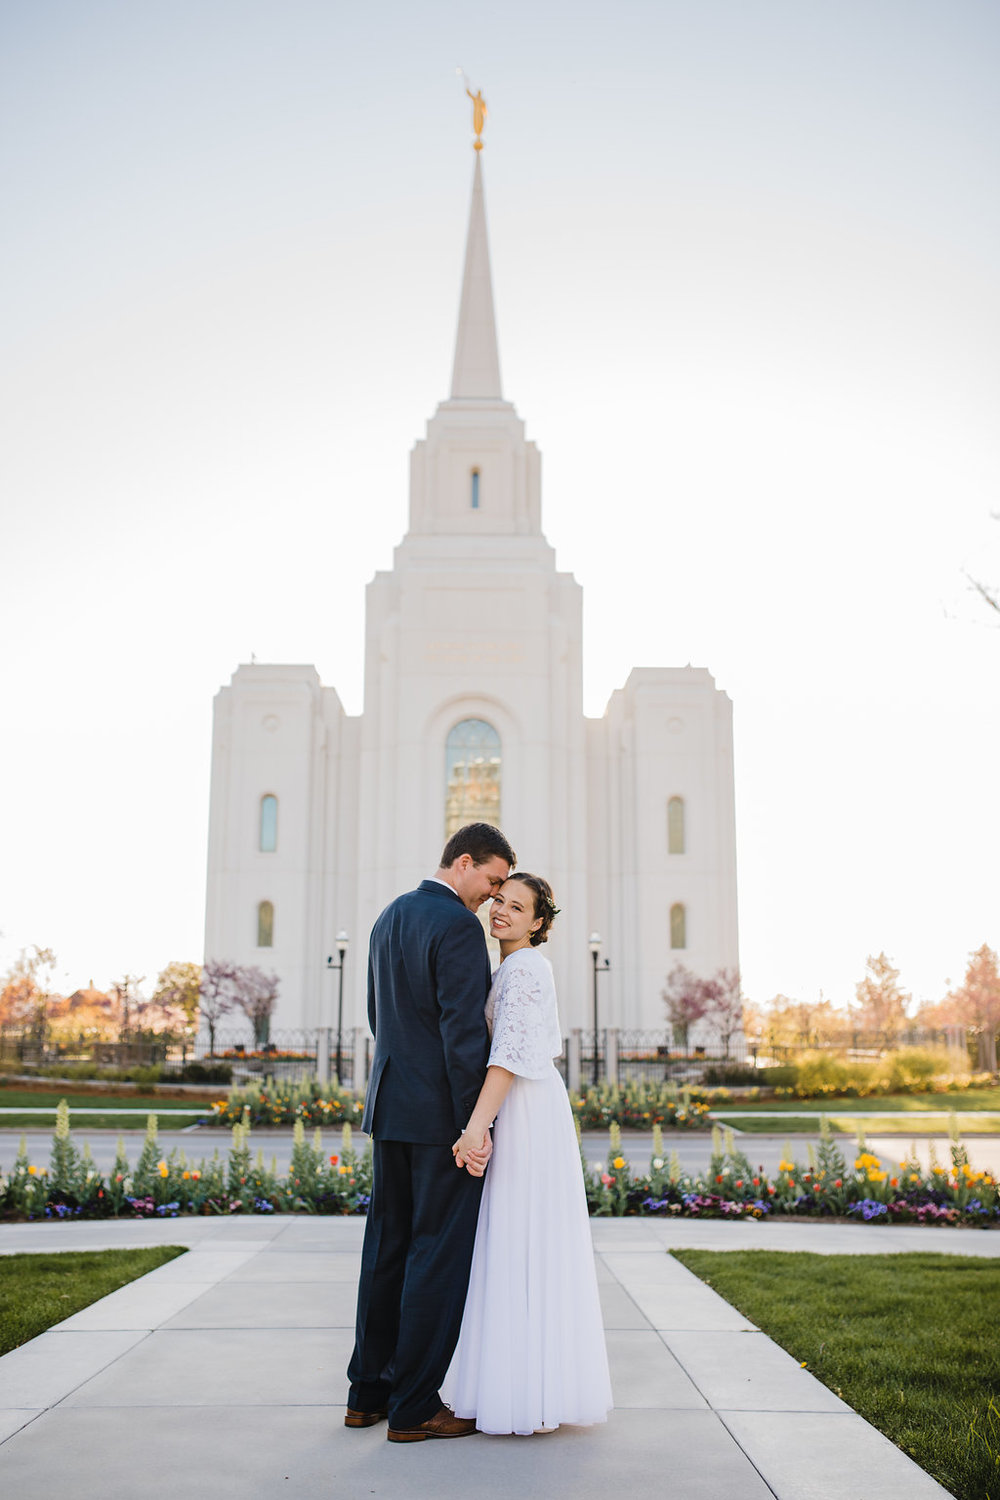 brigham city wedding photographer lds temple young couple mormon wedding photographer calli richards available for travel northern utah